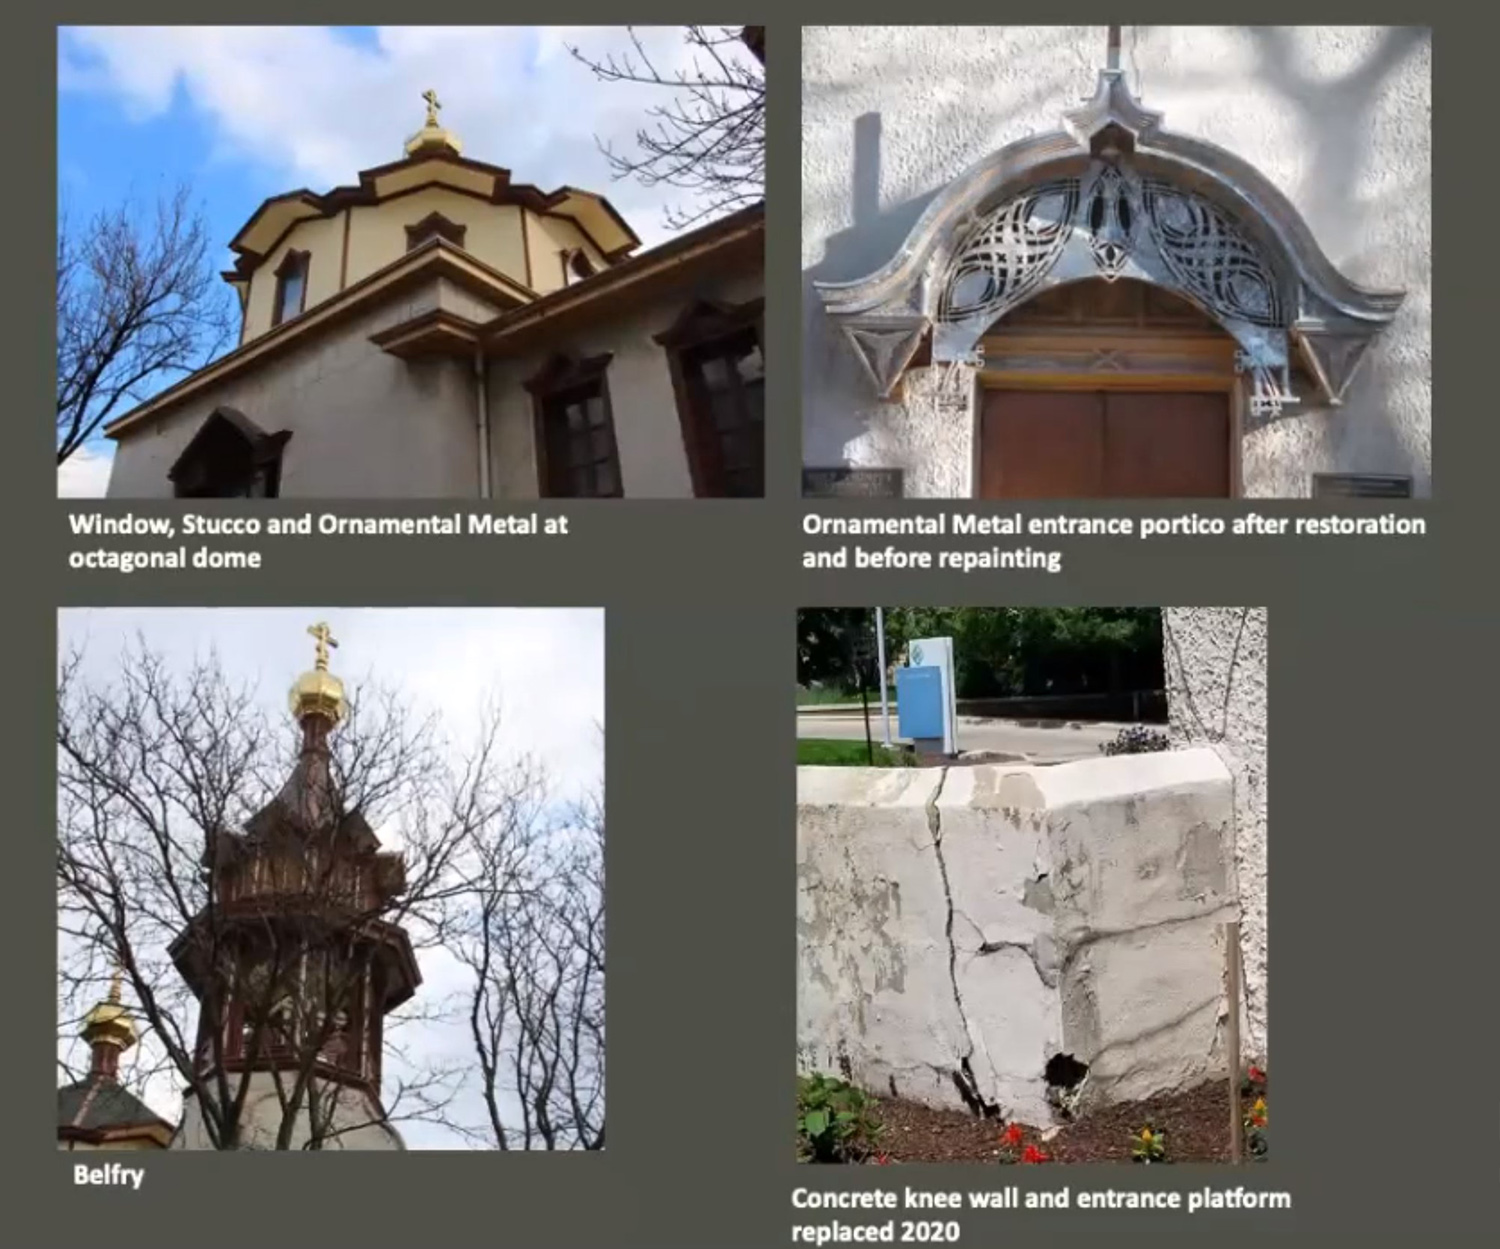 Previous Restoration Work on Holy Trinity Orthodox Cathedral and Rectory. Images by Landmarks Commission